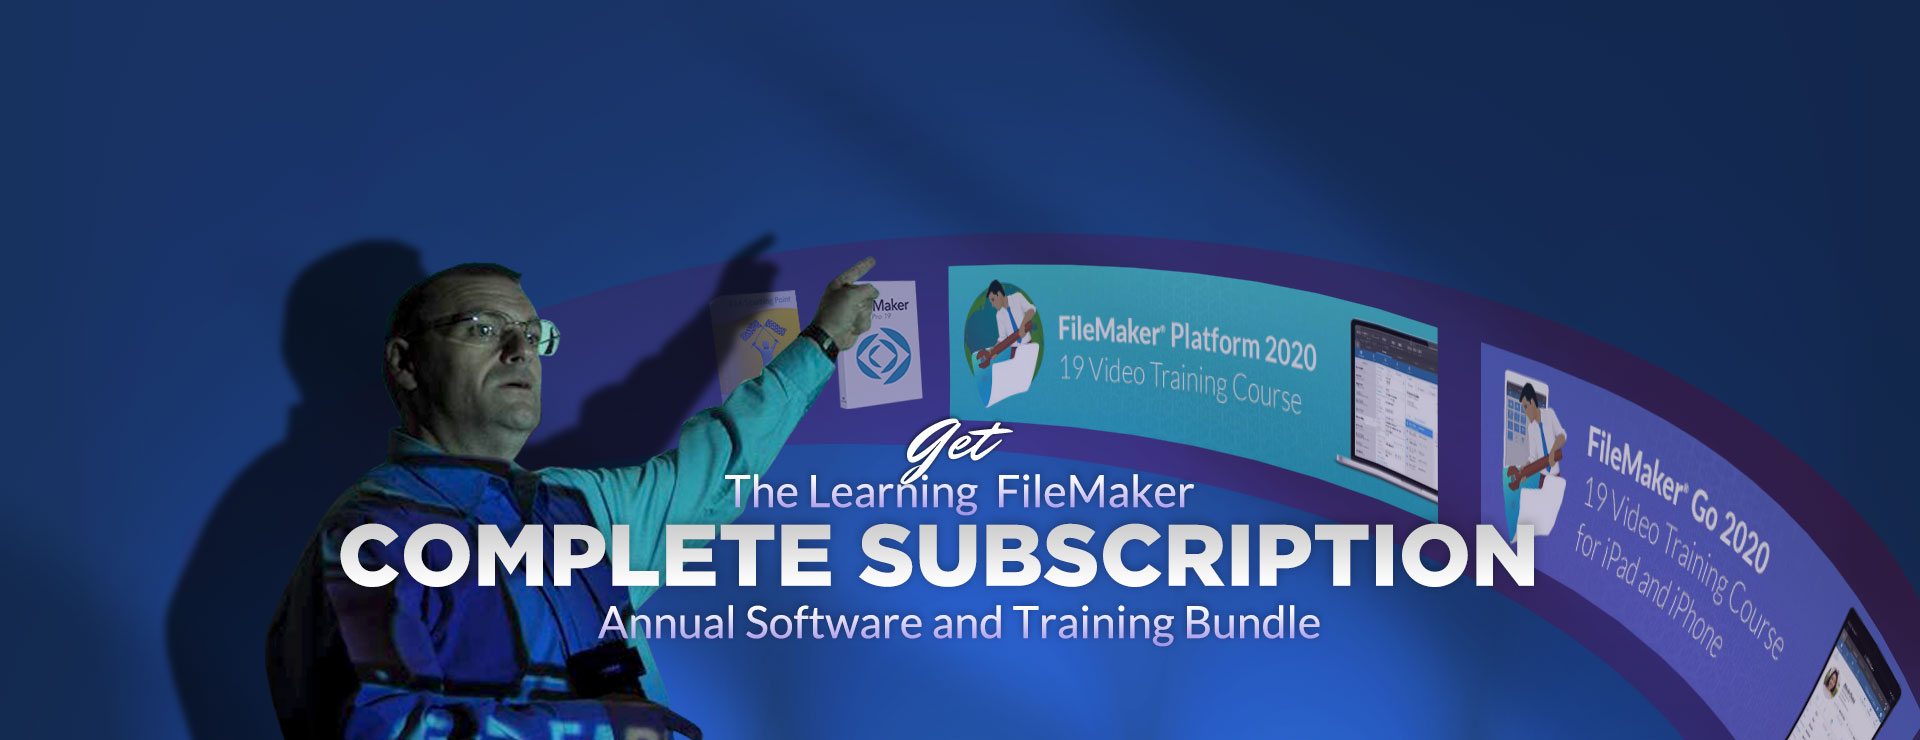 Complete Learning FileMaker Subscription